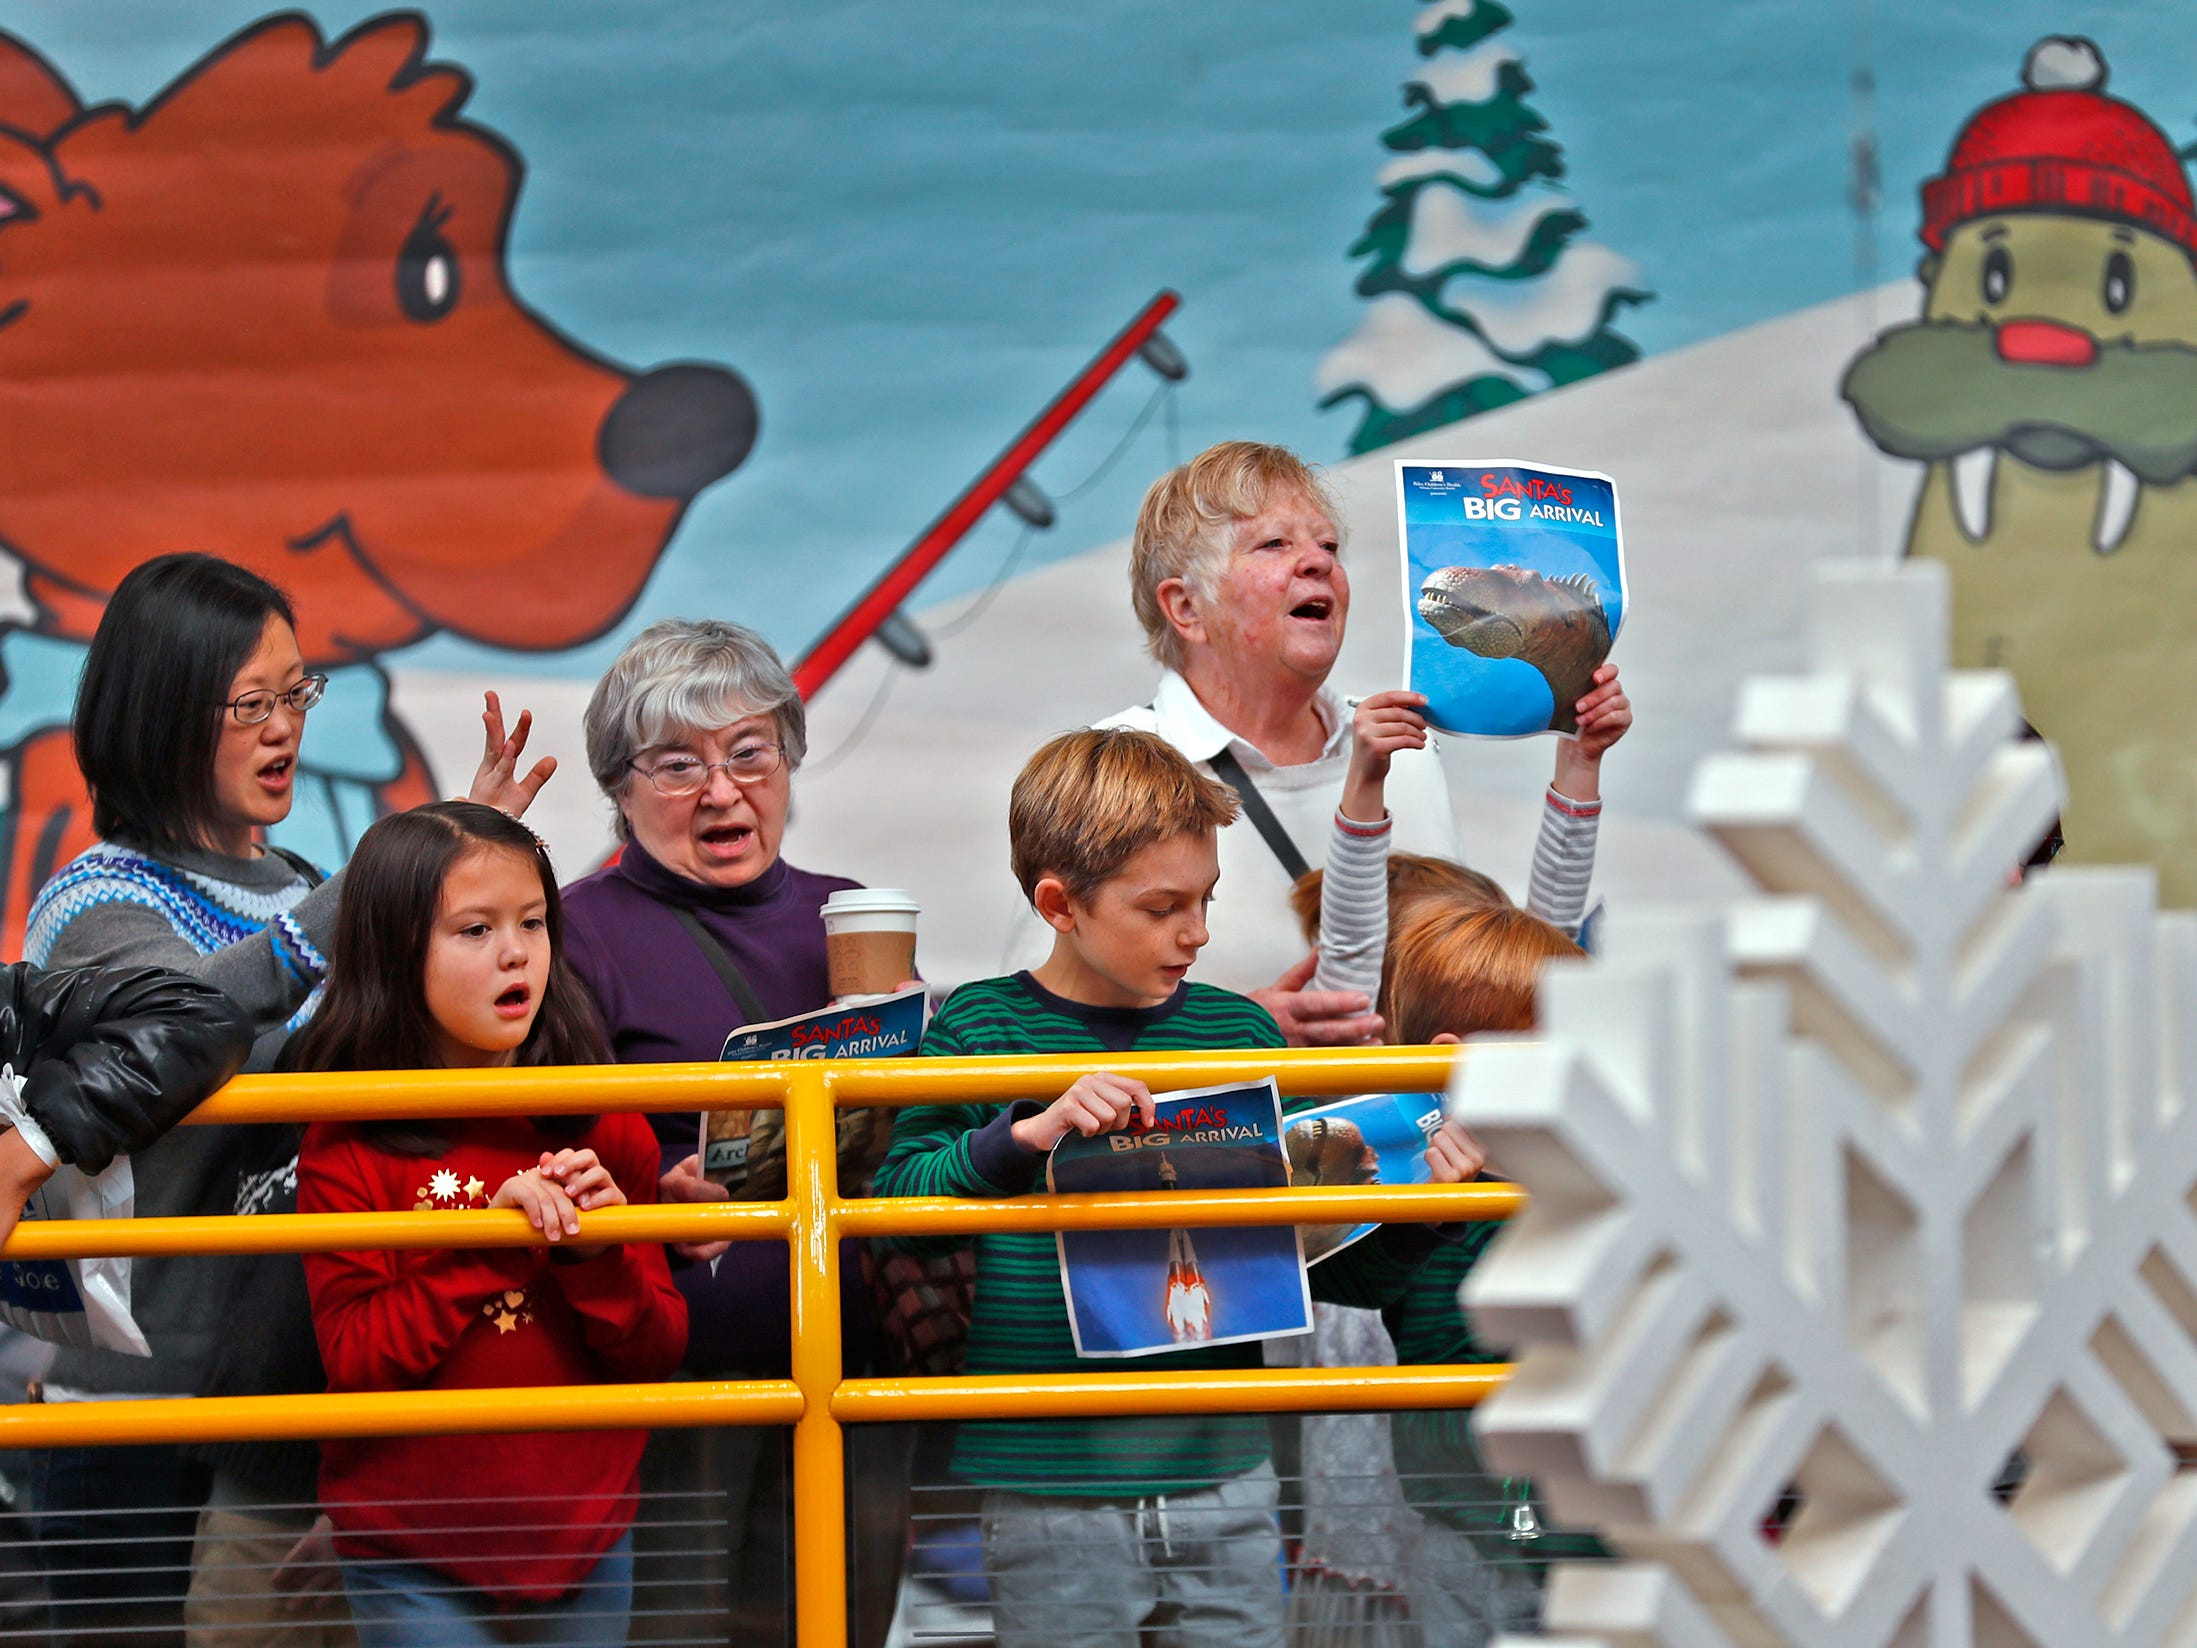 Families sing a Children's Museum rendition of 12 Days of Christmas at the Children's Museum of Indianapolis during the start of the Jolly Days Winter Wonderland celebration, Friday, Nov. 23, 2018.